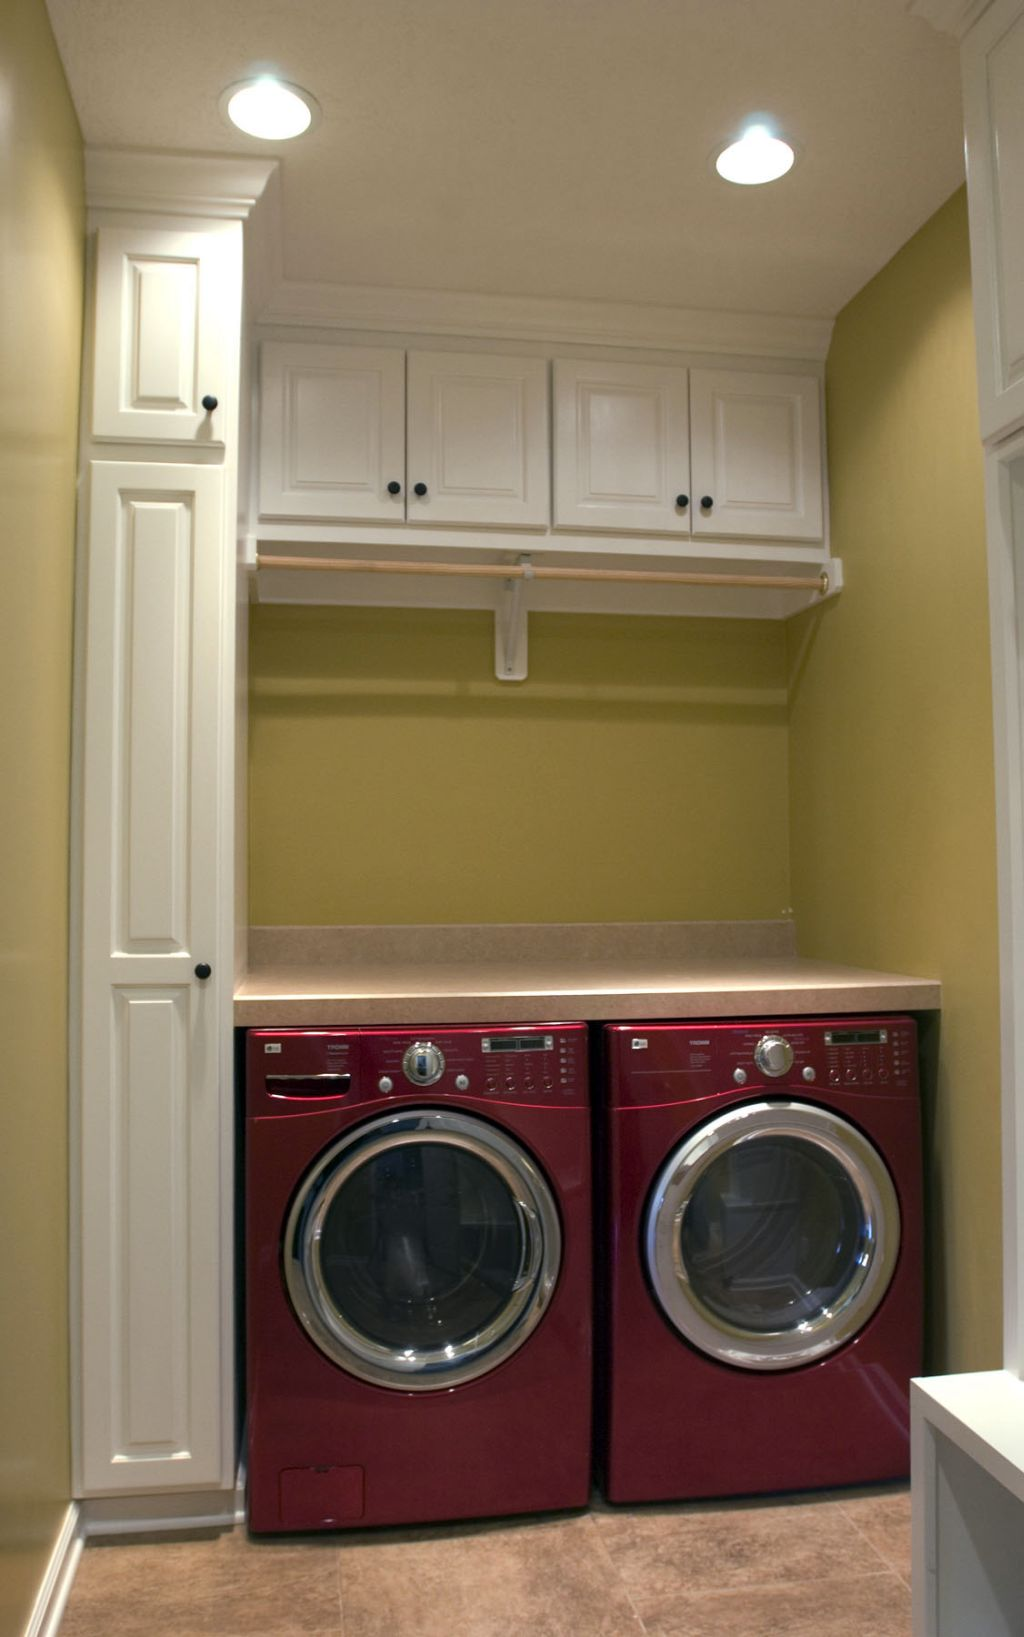 20 Briliant Small Laundry Room Storage Solutions on Small Laundry Room Cabinets  id=48254